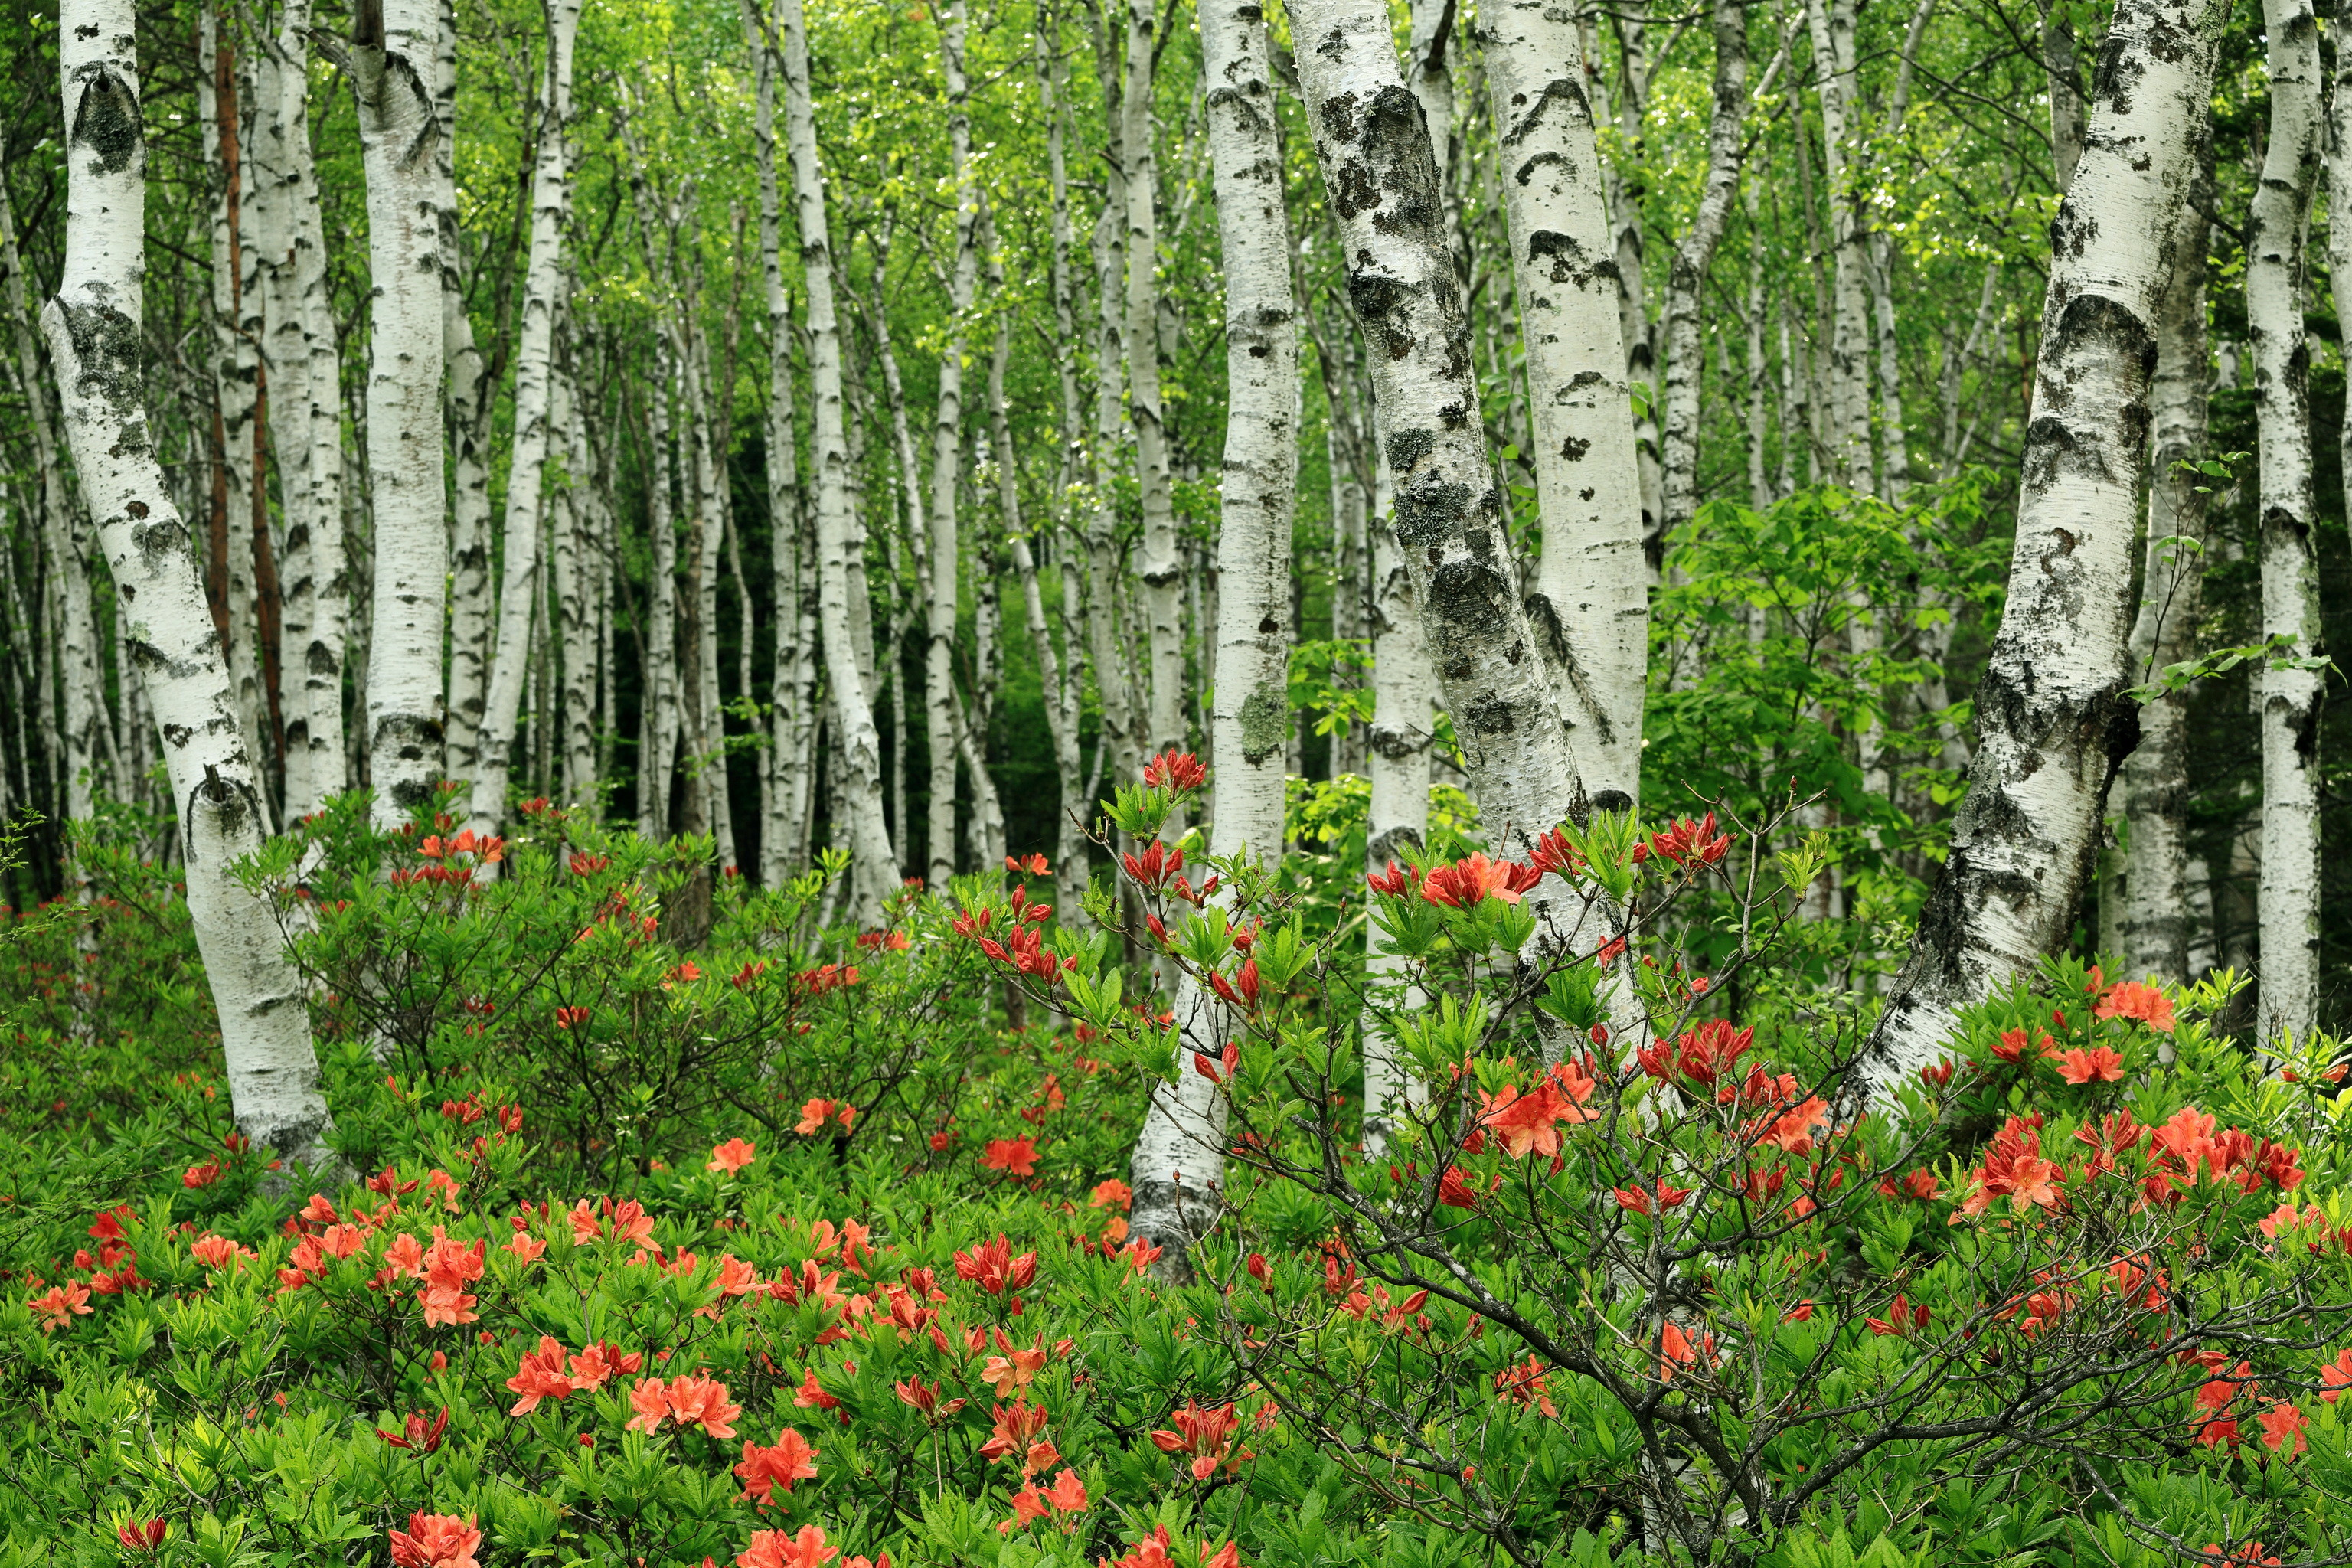 Res: 3072x2048, Forests Japan Birch Trees Nature wallpaper |  | 119680 |  WallpaperUP